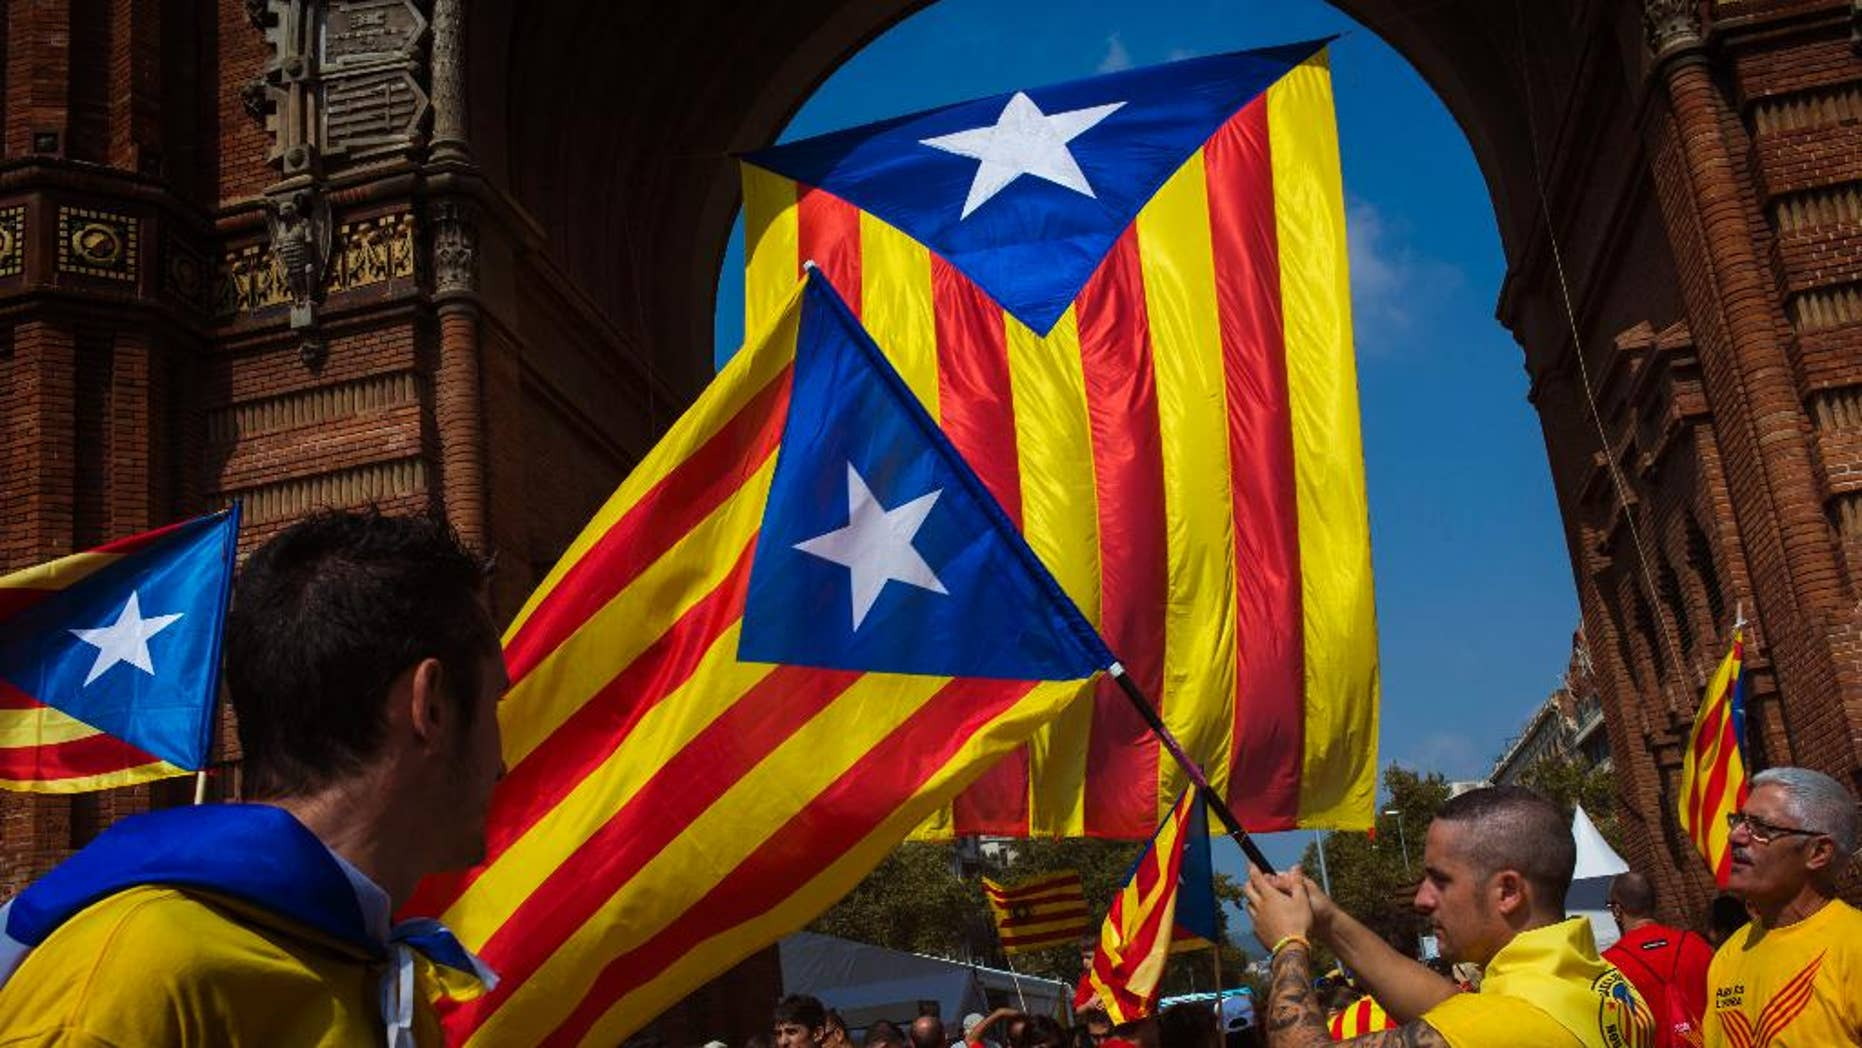 """People wave """"estelada"""" flags, that symbolize Catalonia's independence, in Barcelona, Spain, Thursday, Sept 11, 2014. A week before Scotland votes on whether to break away from the United Kingdom, separatists in northeastern Spain were trying to convince hundreds of thousands to protest across Catalonia to demand a secession sentiment vote that the central government in Madrid insists would be illegal. (AP Photo/Emilio Morenatti)"""